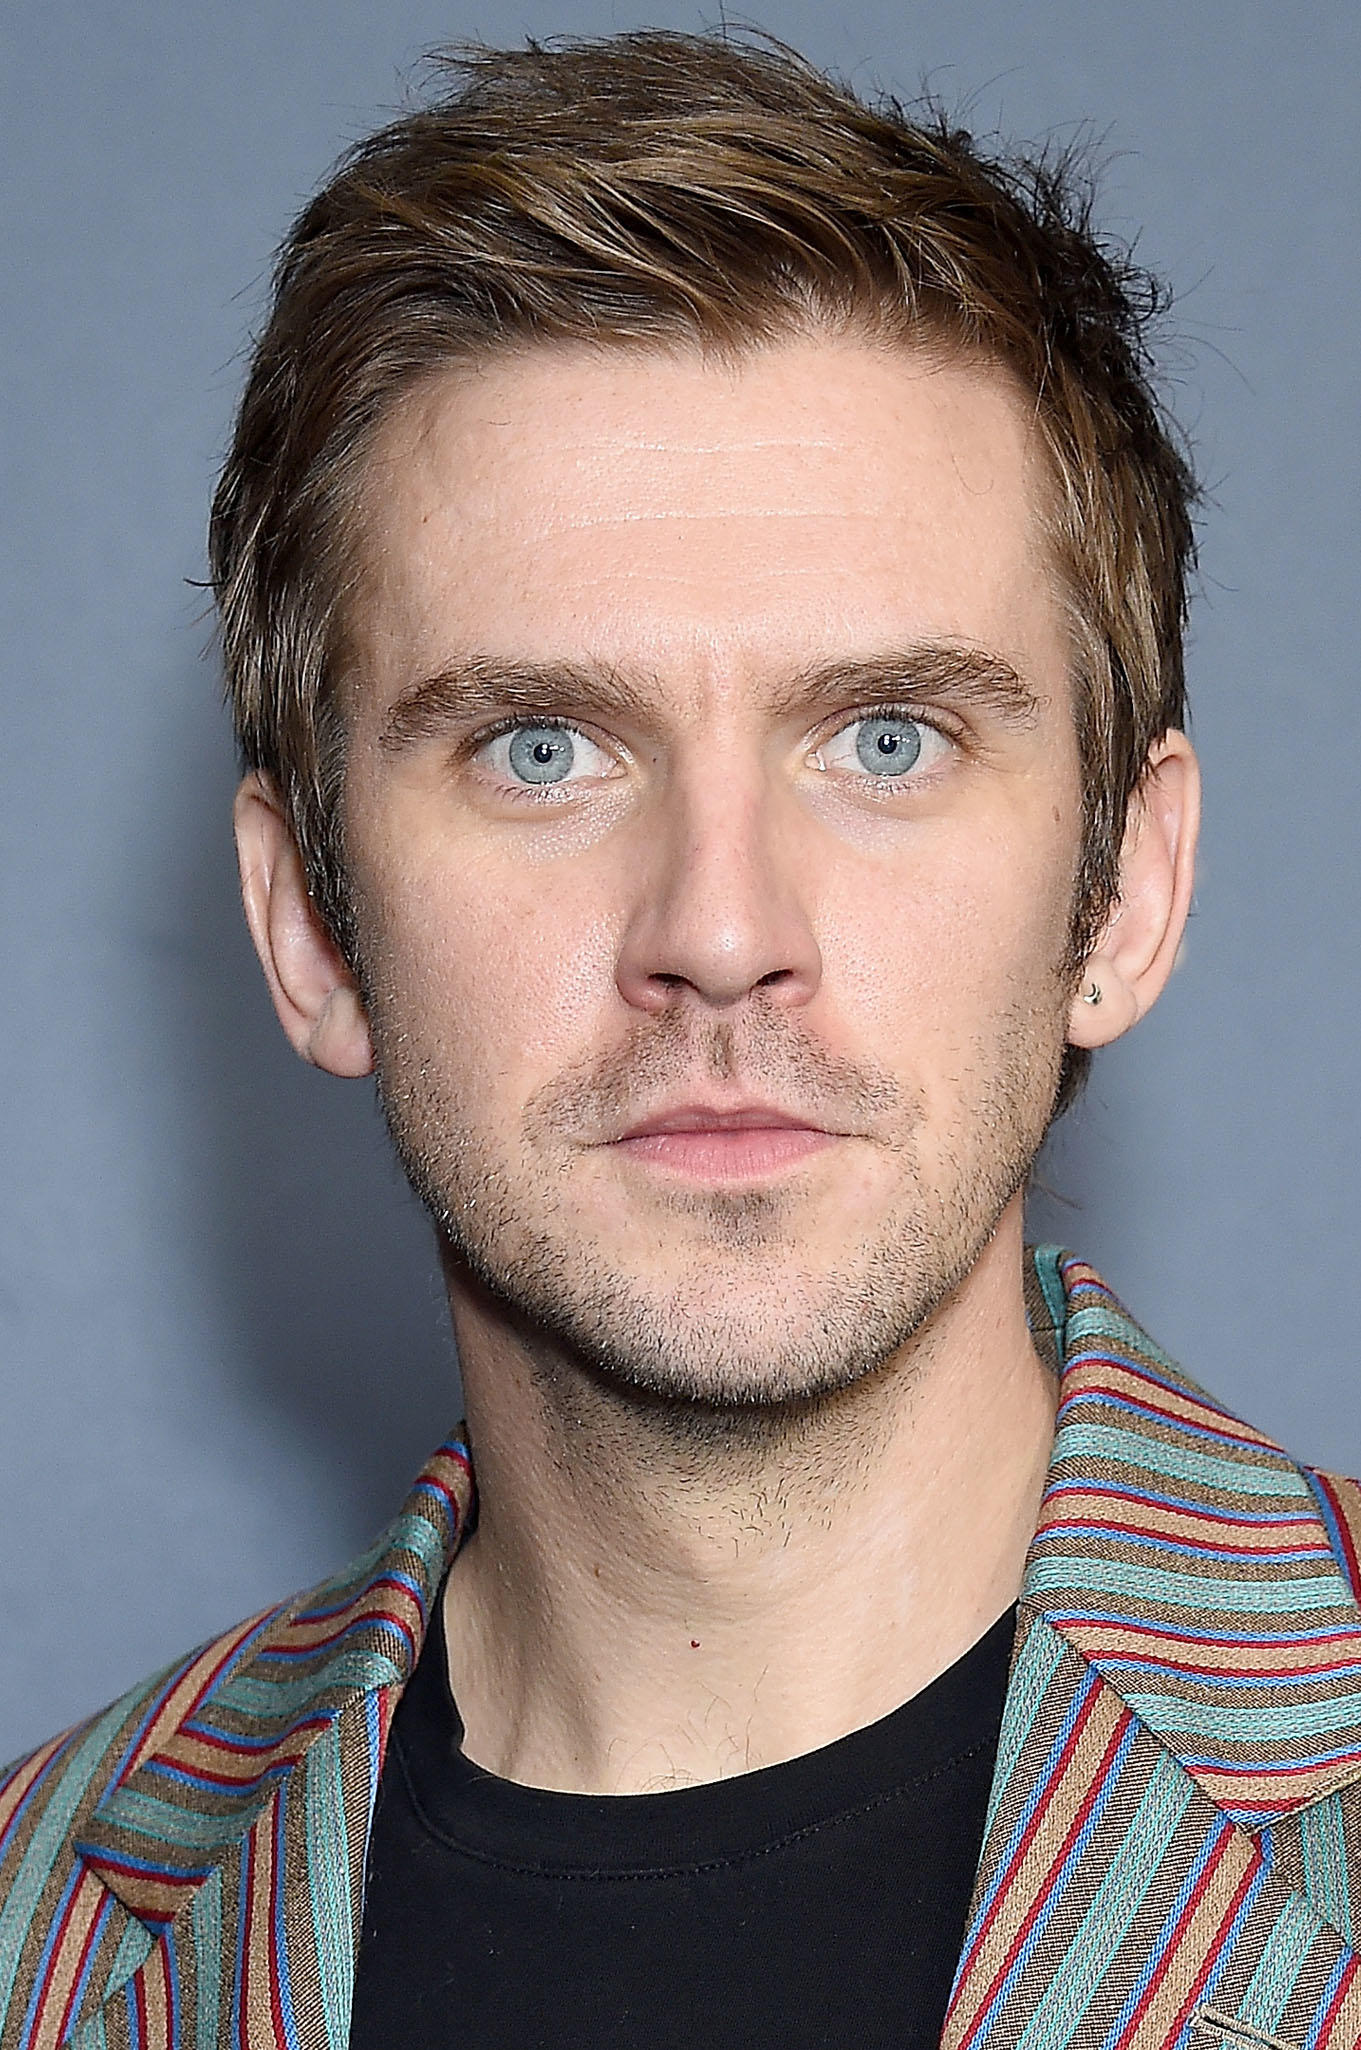 Dan Stevens at the 2019 Winter TCA Tour - FX Starwalk in Pasadena, California.